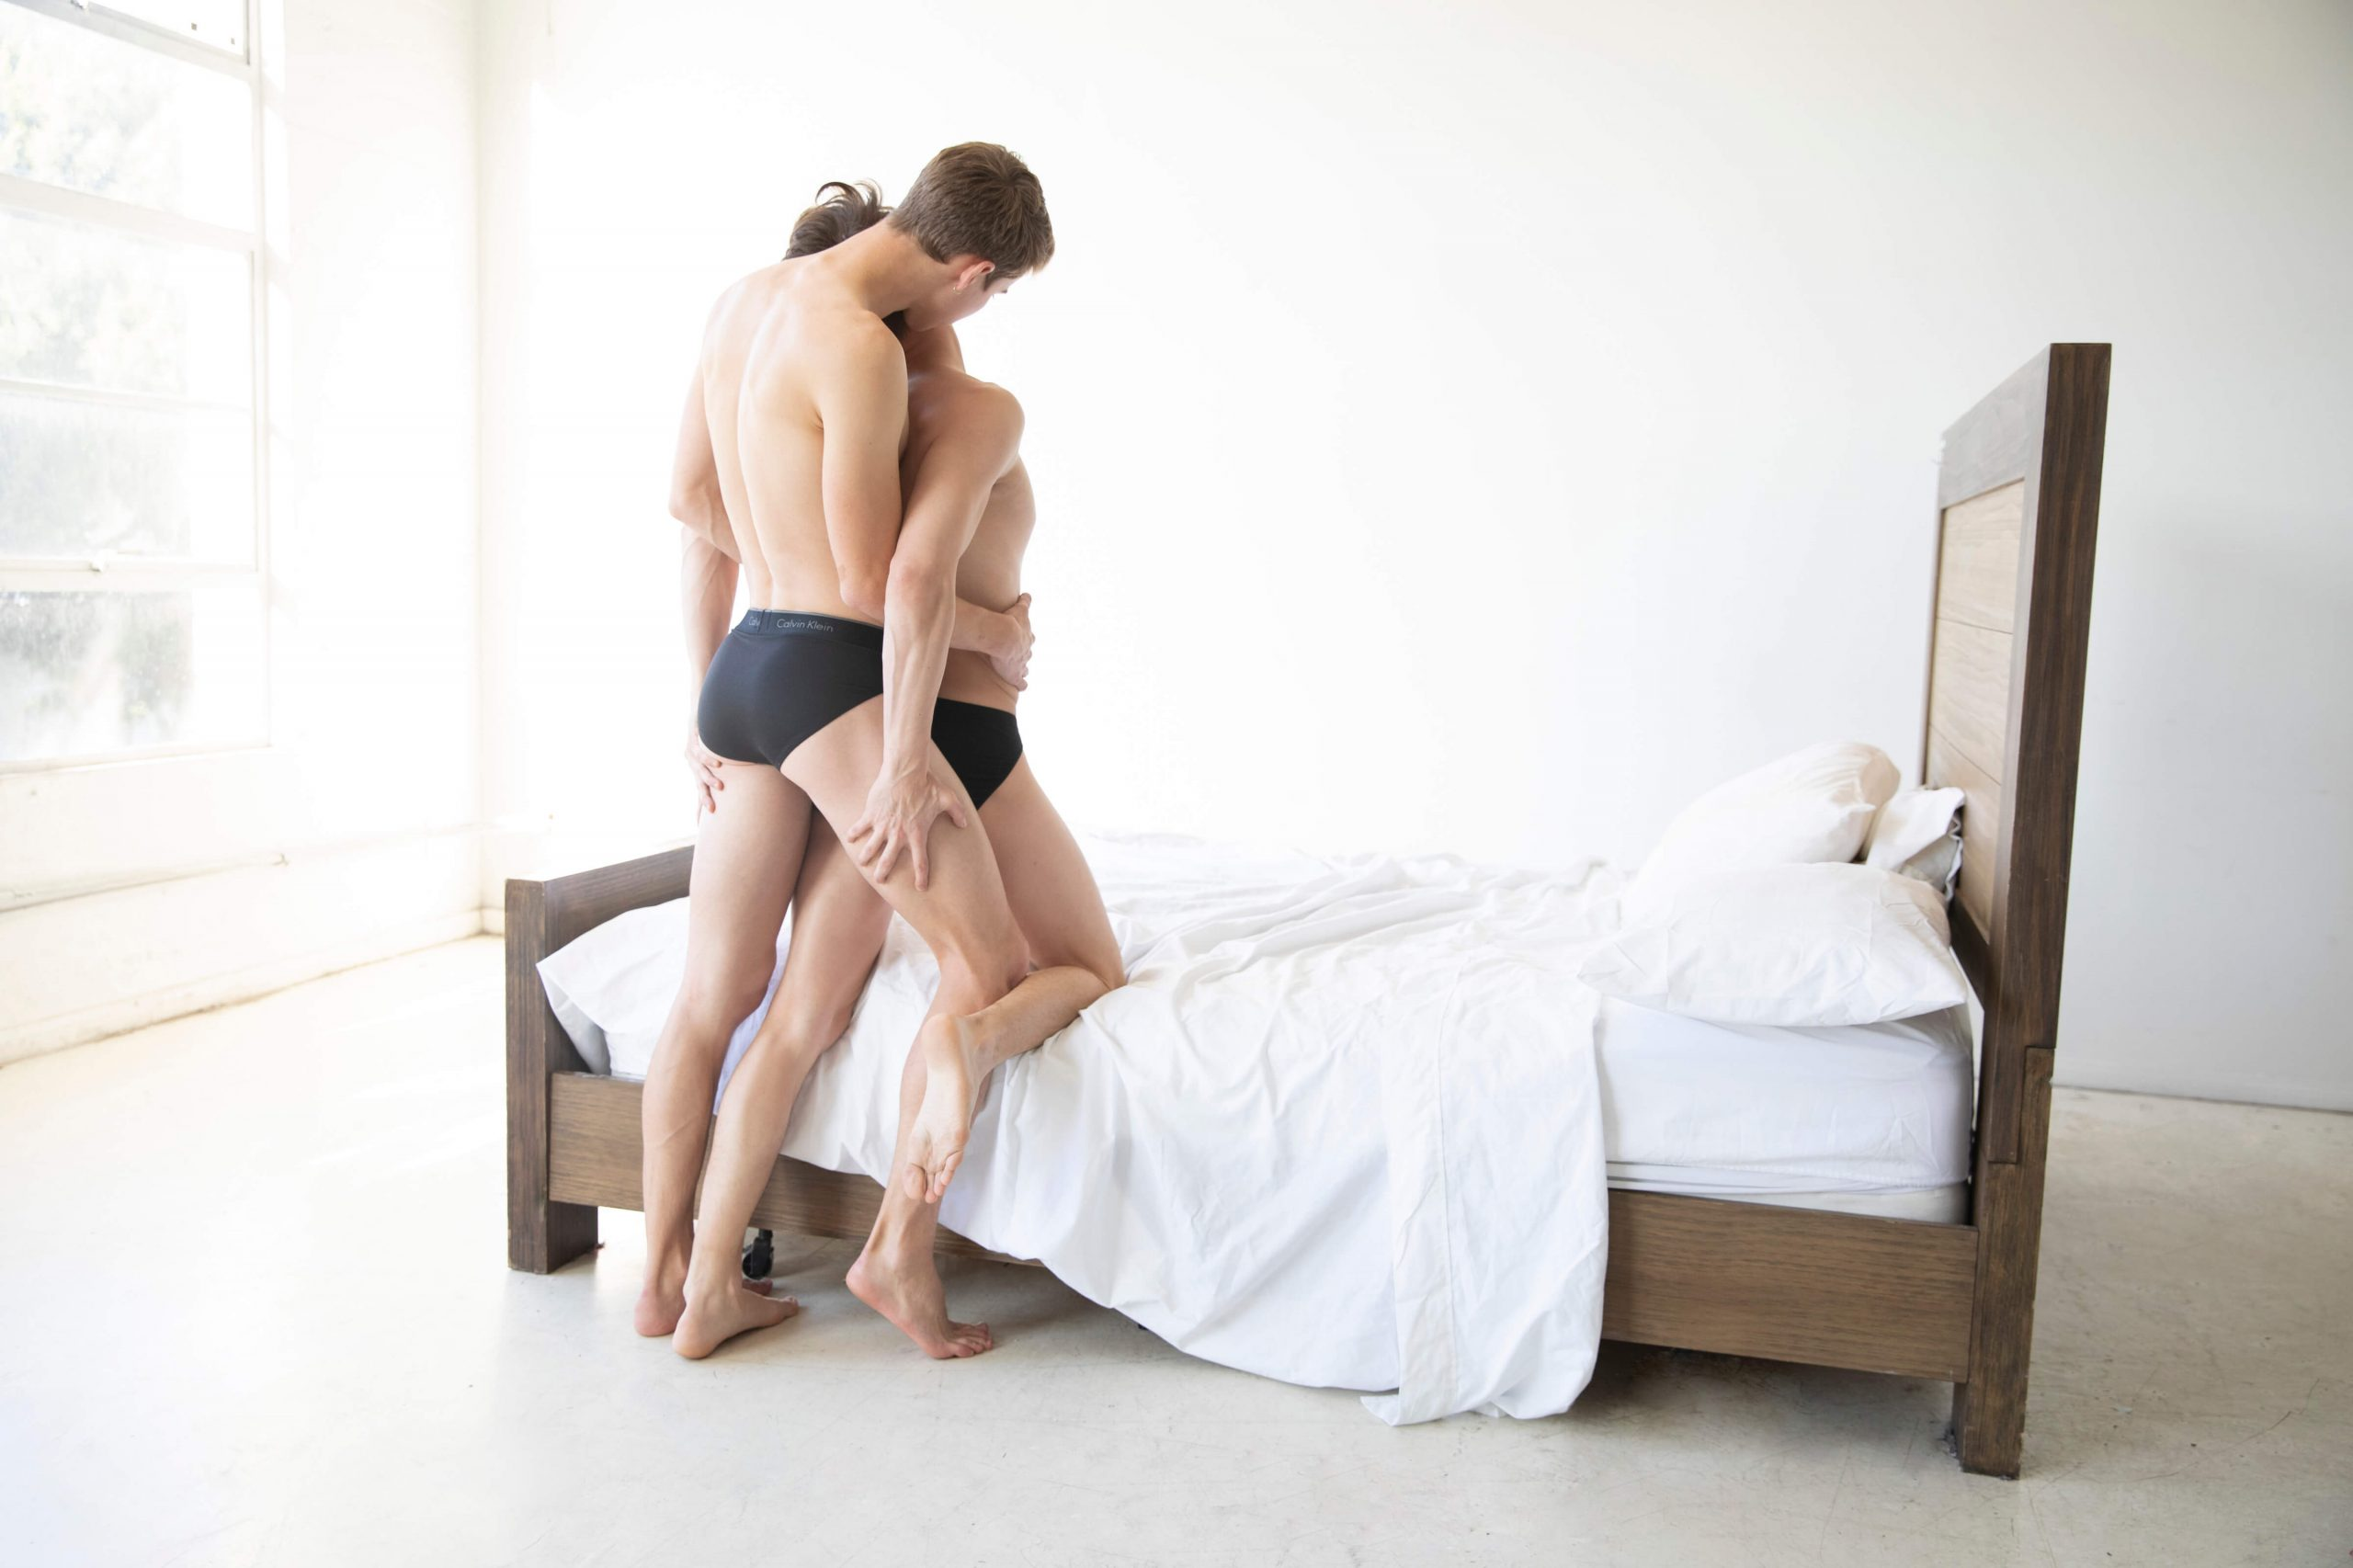 Sexposition gay Questions About